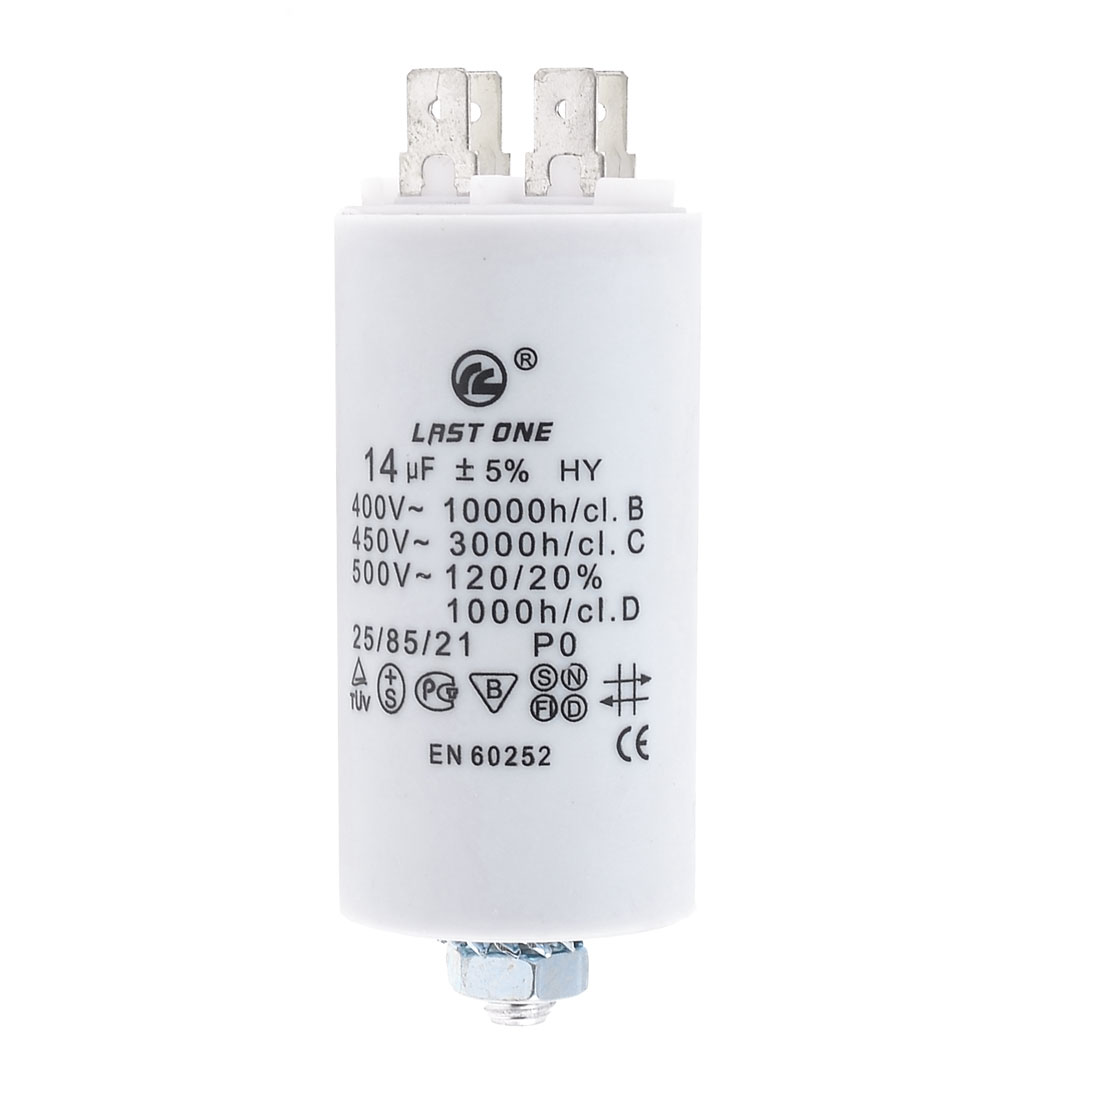 14MFD 14uF 450V Cylinder Electric AC Motor Running Capacitor